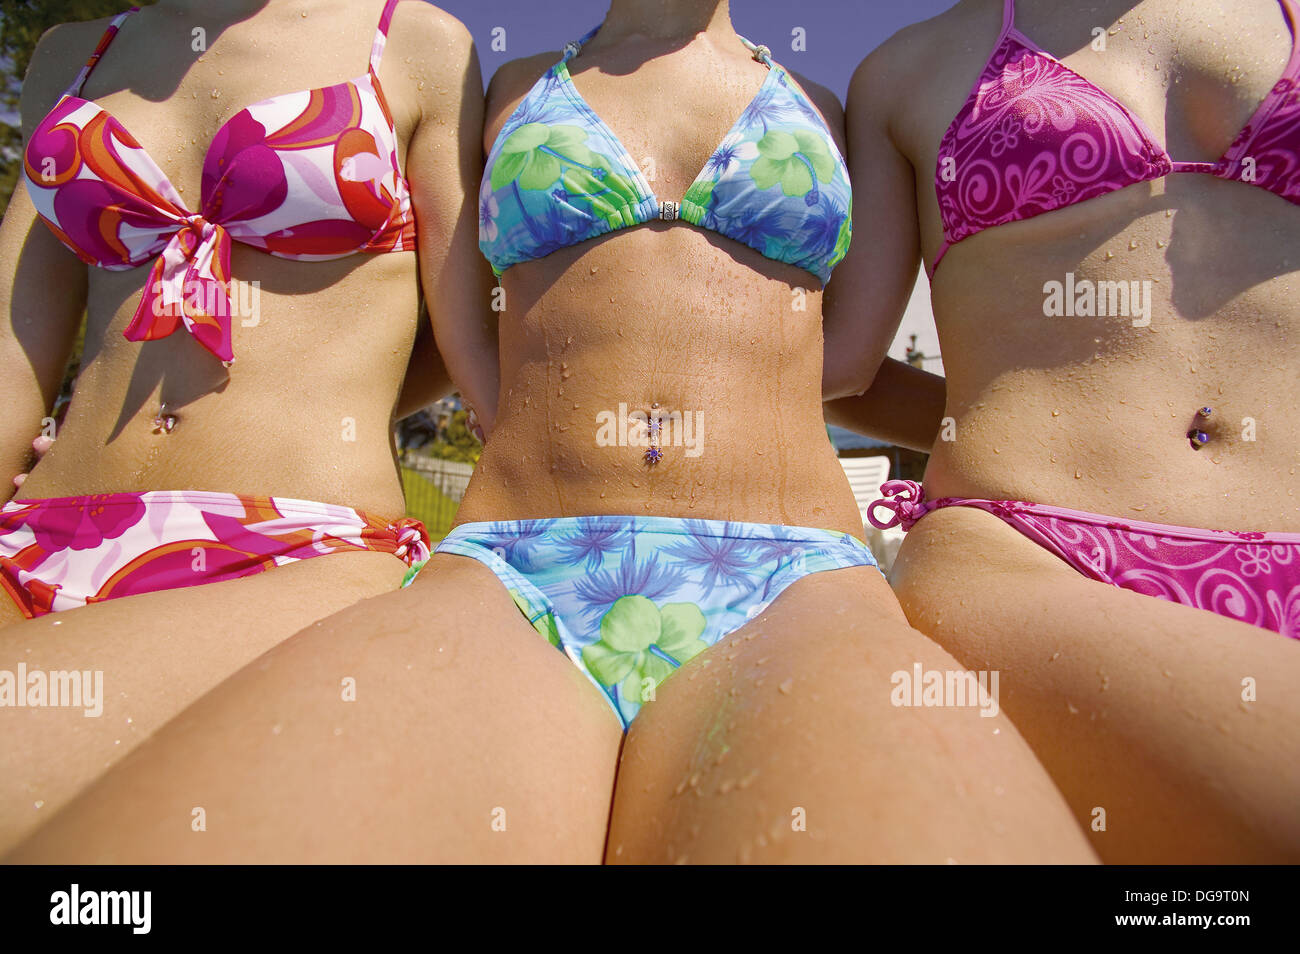 Close-up of Three women in Bikinis at poolside Stock Photo ...